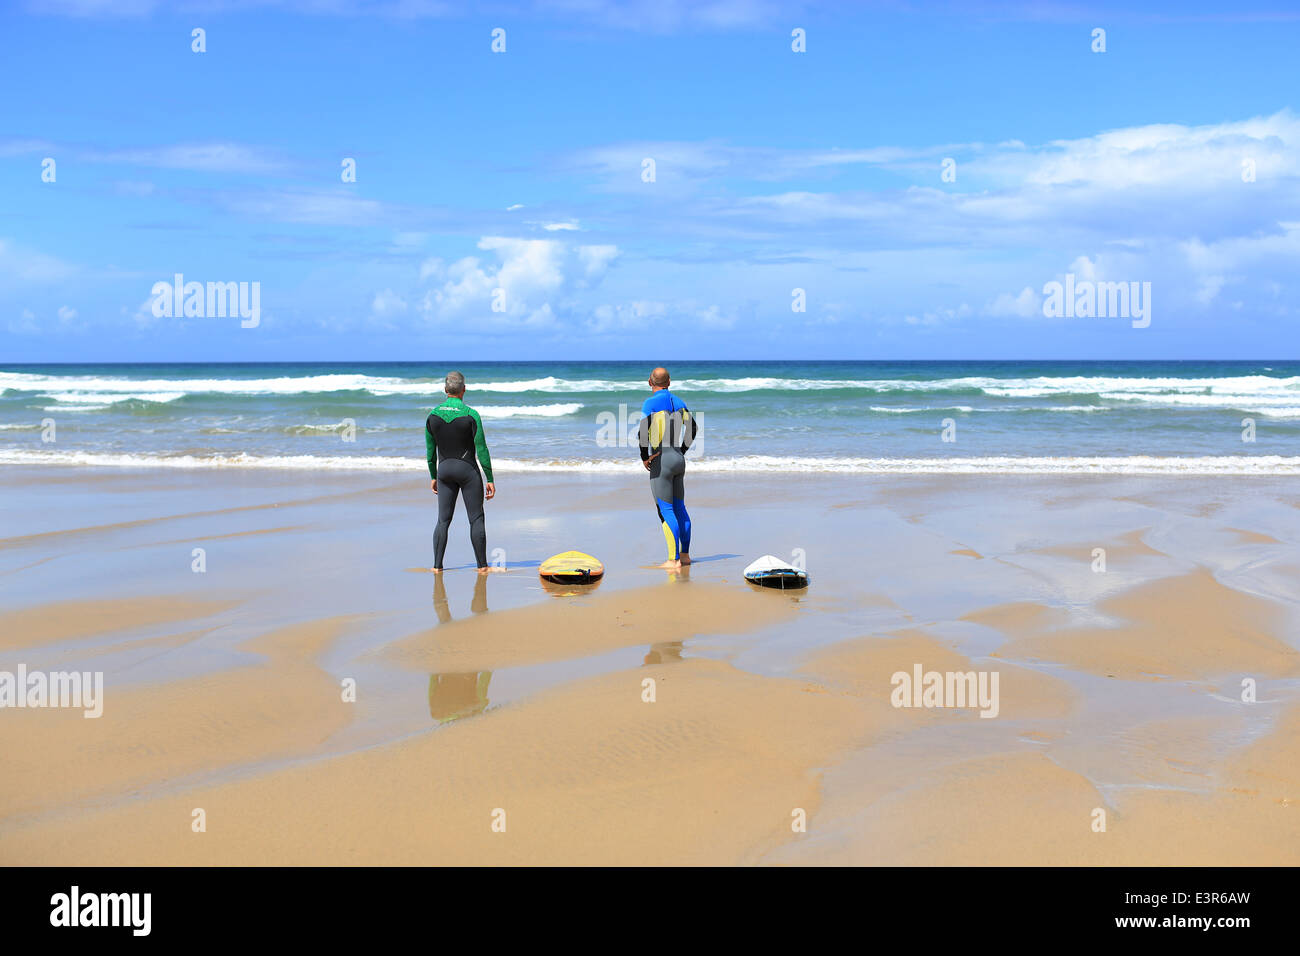 Silver surfers, two middle aged men with surf boards on an empty beach on a sunny day with blue sky - Stock Image